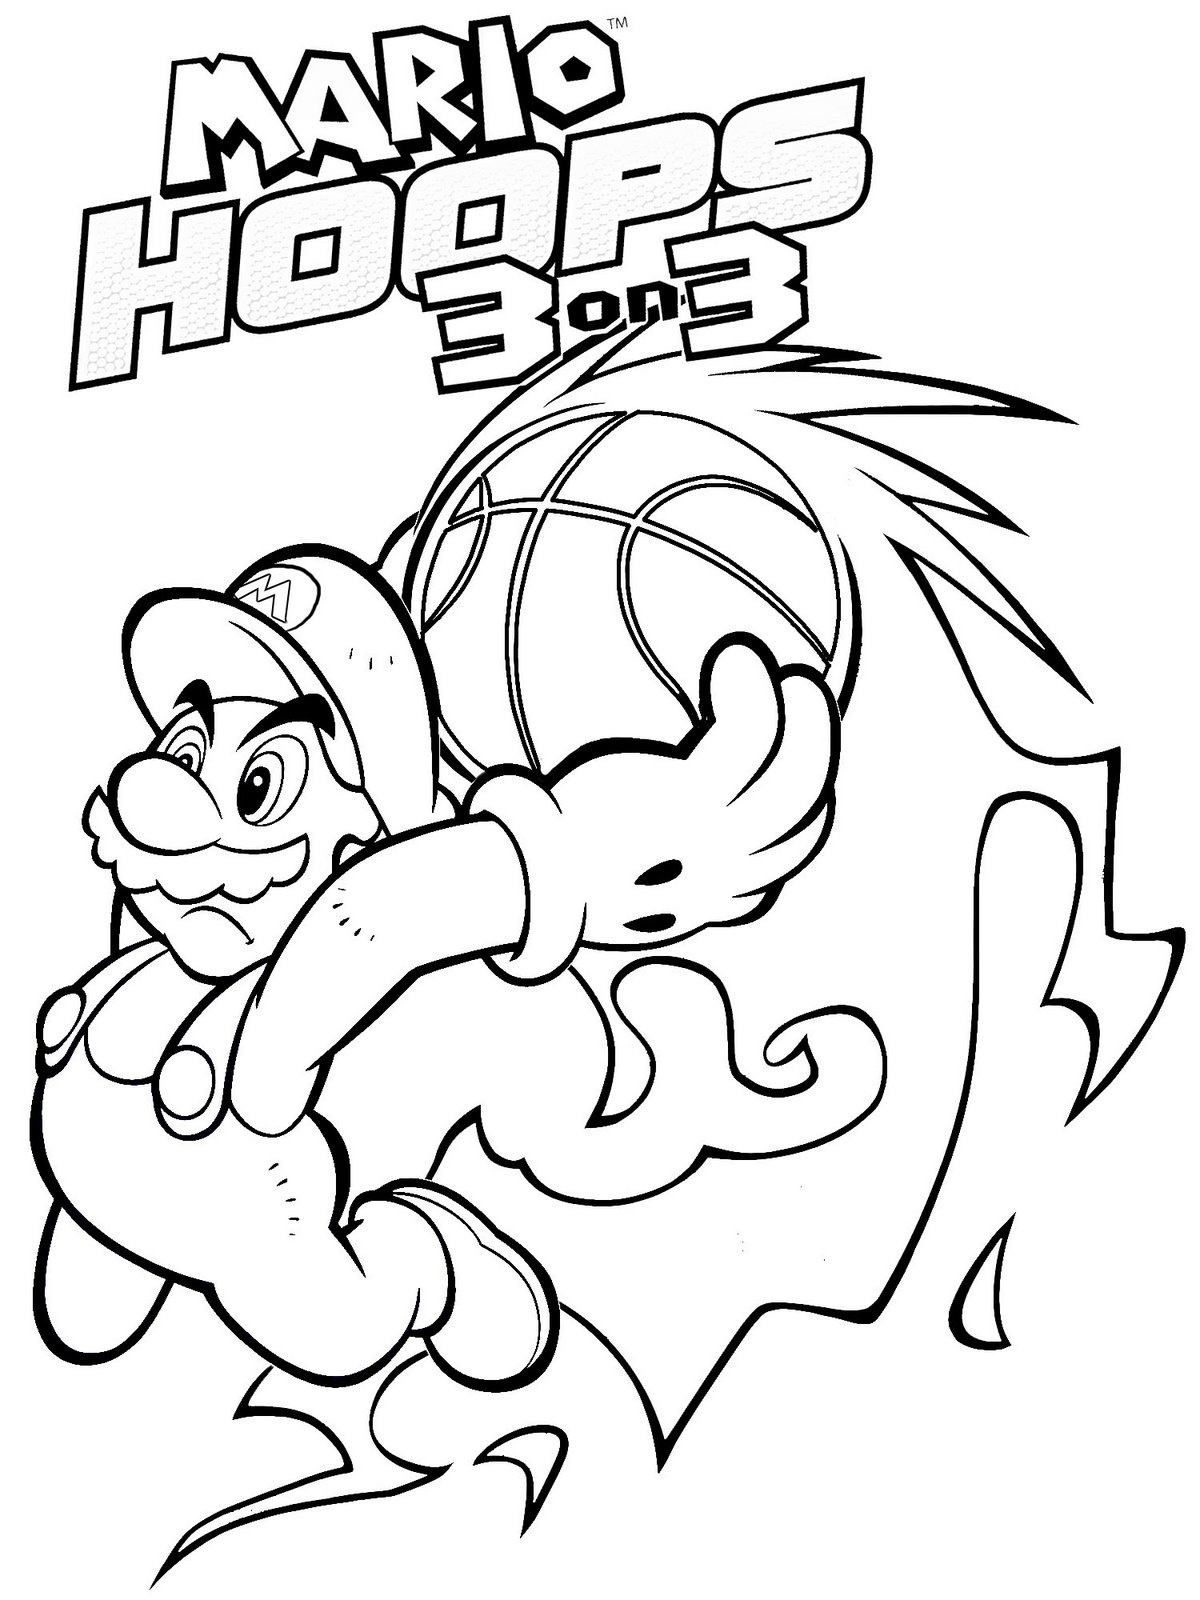 mario brothers coloring pages - super mario brothers coloring pages 2 sketch templates